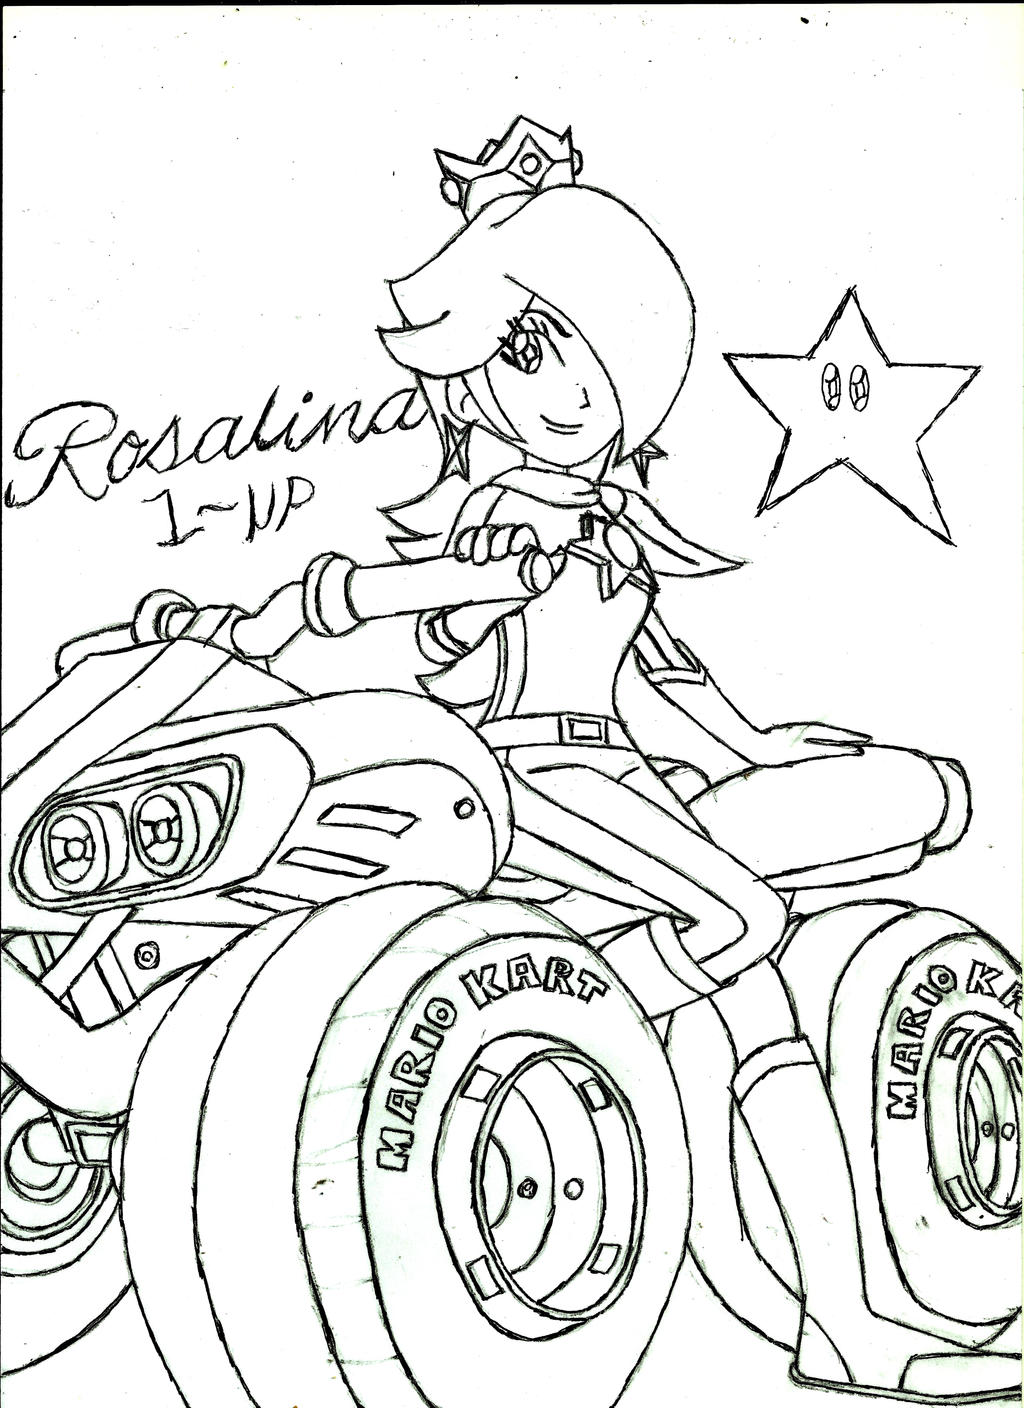 rosalina mario kart 8 by on deviantart - Rosalina Peach Coloring Pages